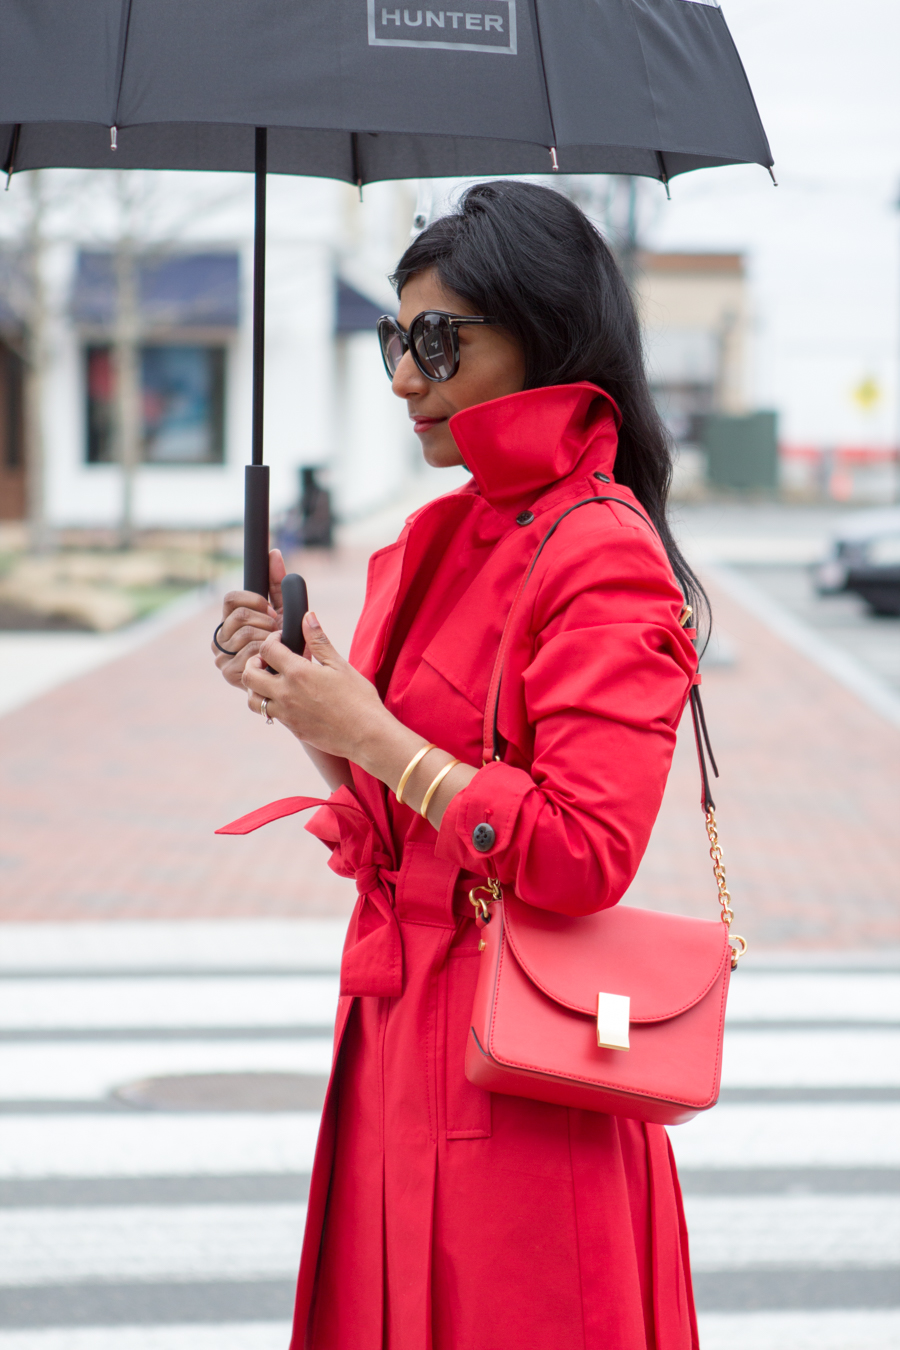 rainy day style, trench coat, red coat, raincoat, single-breasted trench, bright red coat, petite raincoat, red bag, cross-body bag, flynn, hunter, rainwear, mommy style, mom style, elegant look, chic, street style, white pumps, polka dot skirt